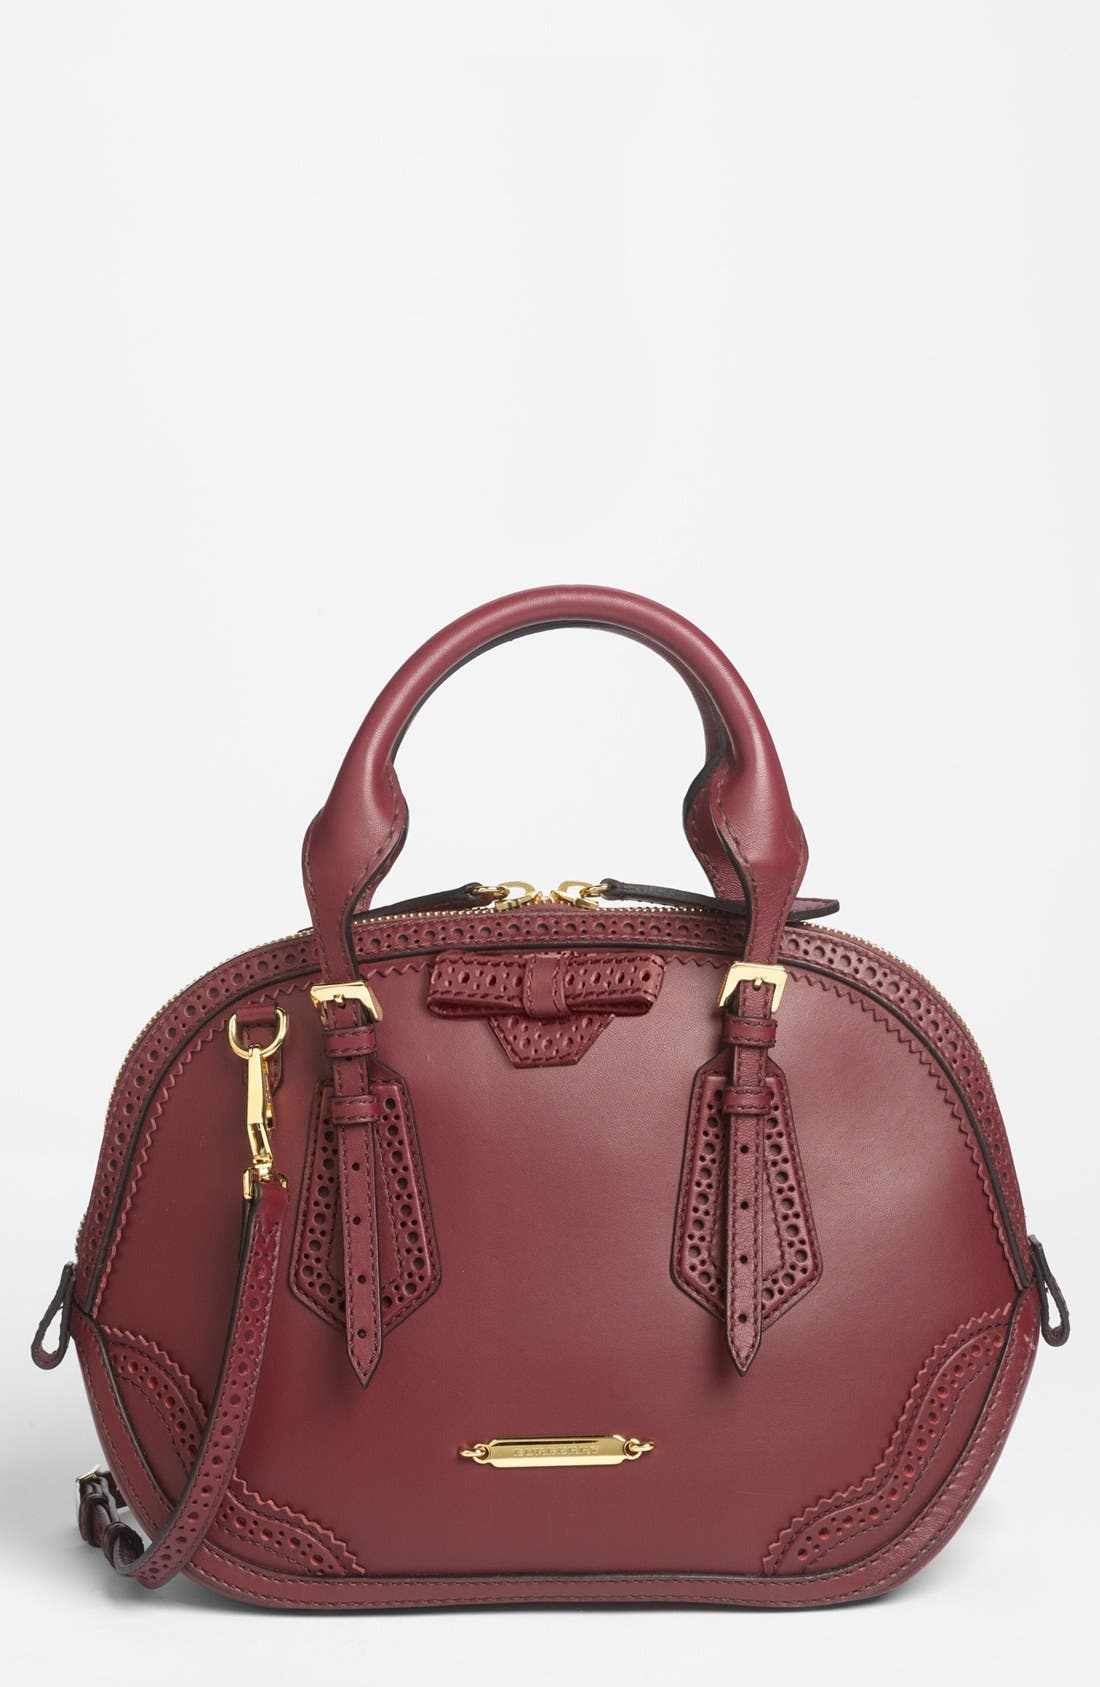 Alternate Image 1 Selected - Burberry 'Orchard - Small' Brogued Leather Satchel